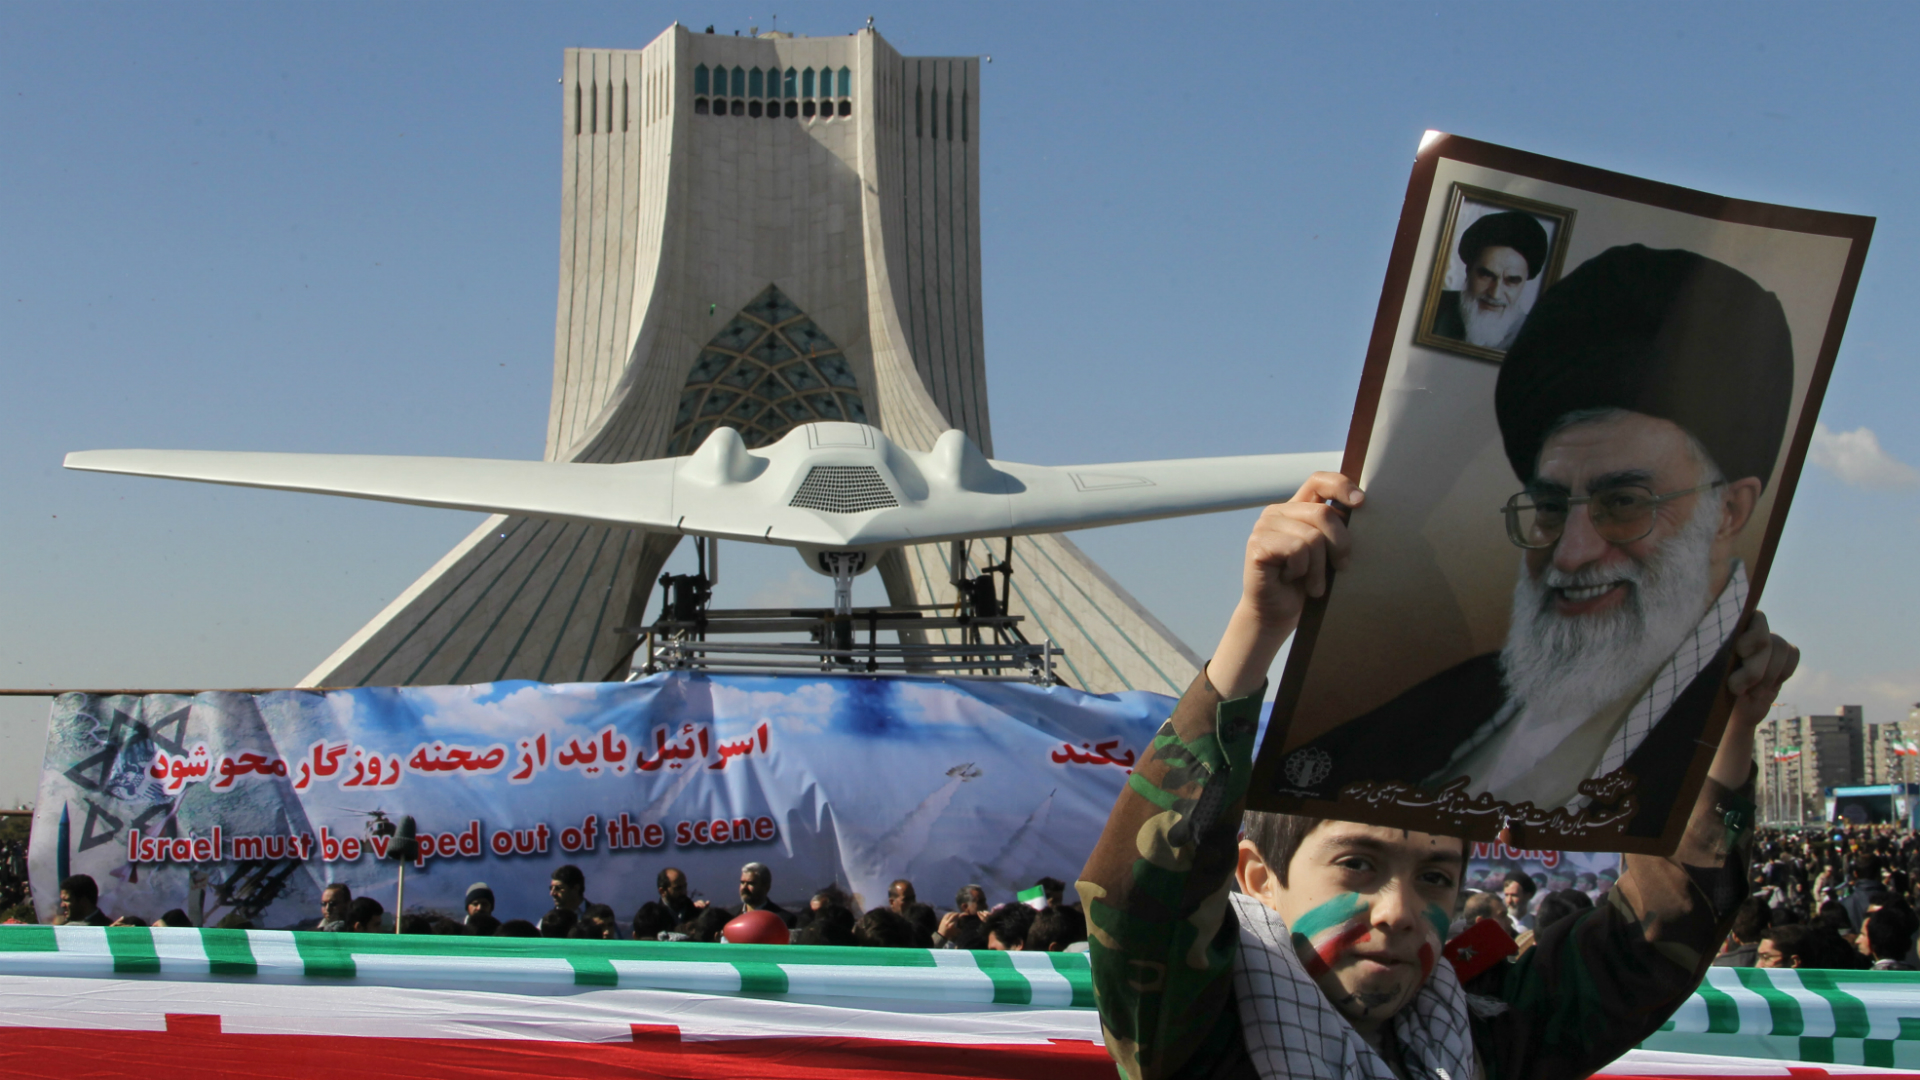 An Iranian drone similar to that which flew into Israel's airspace